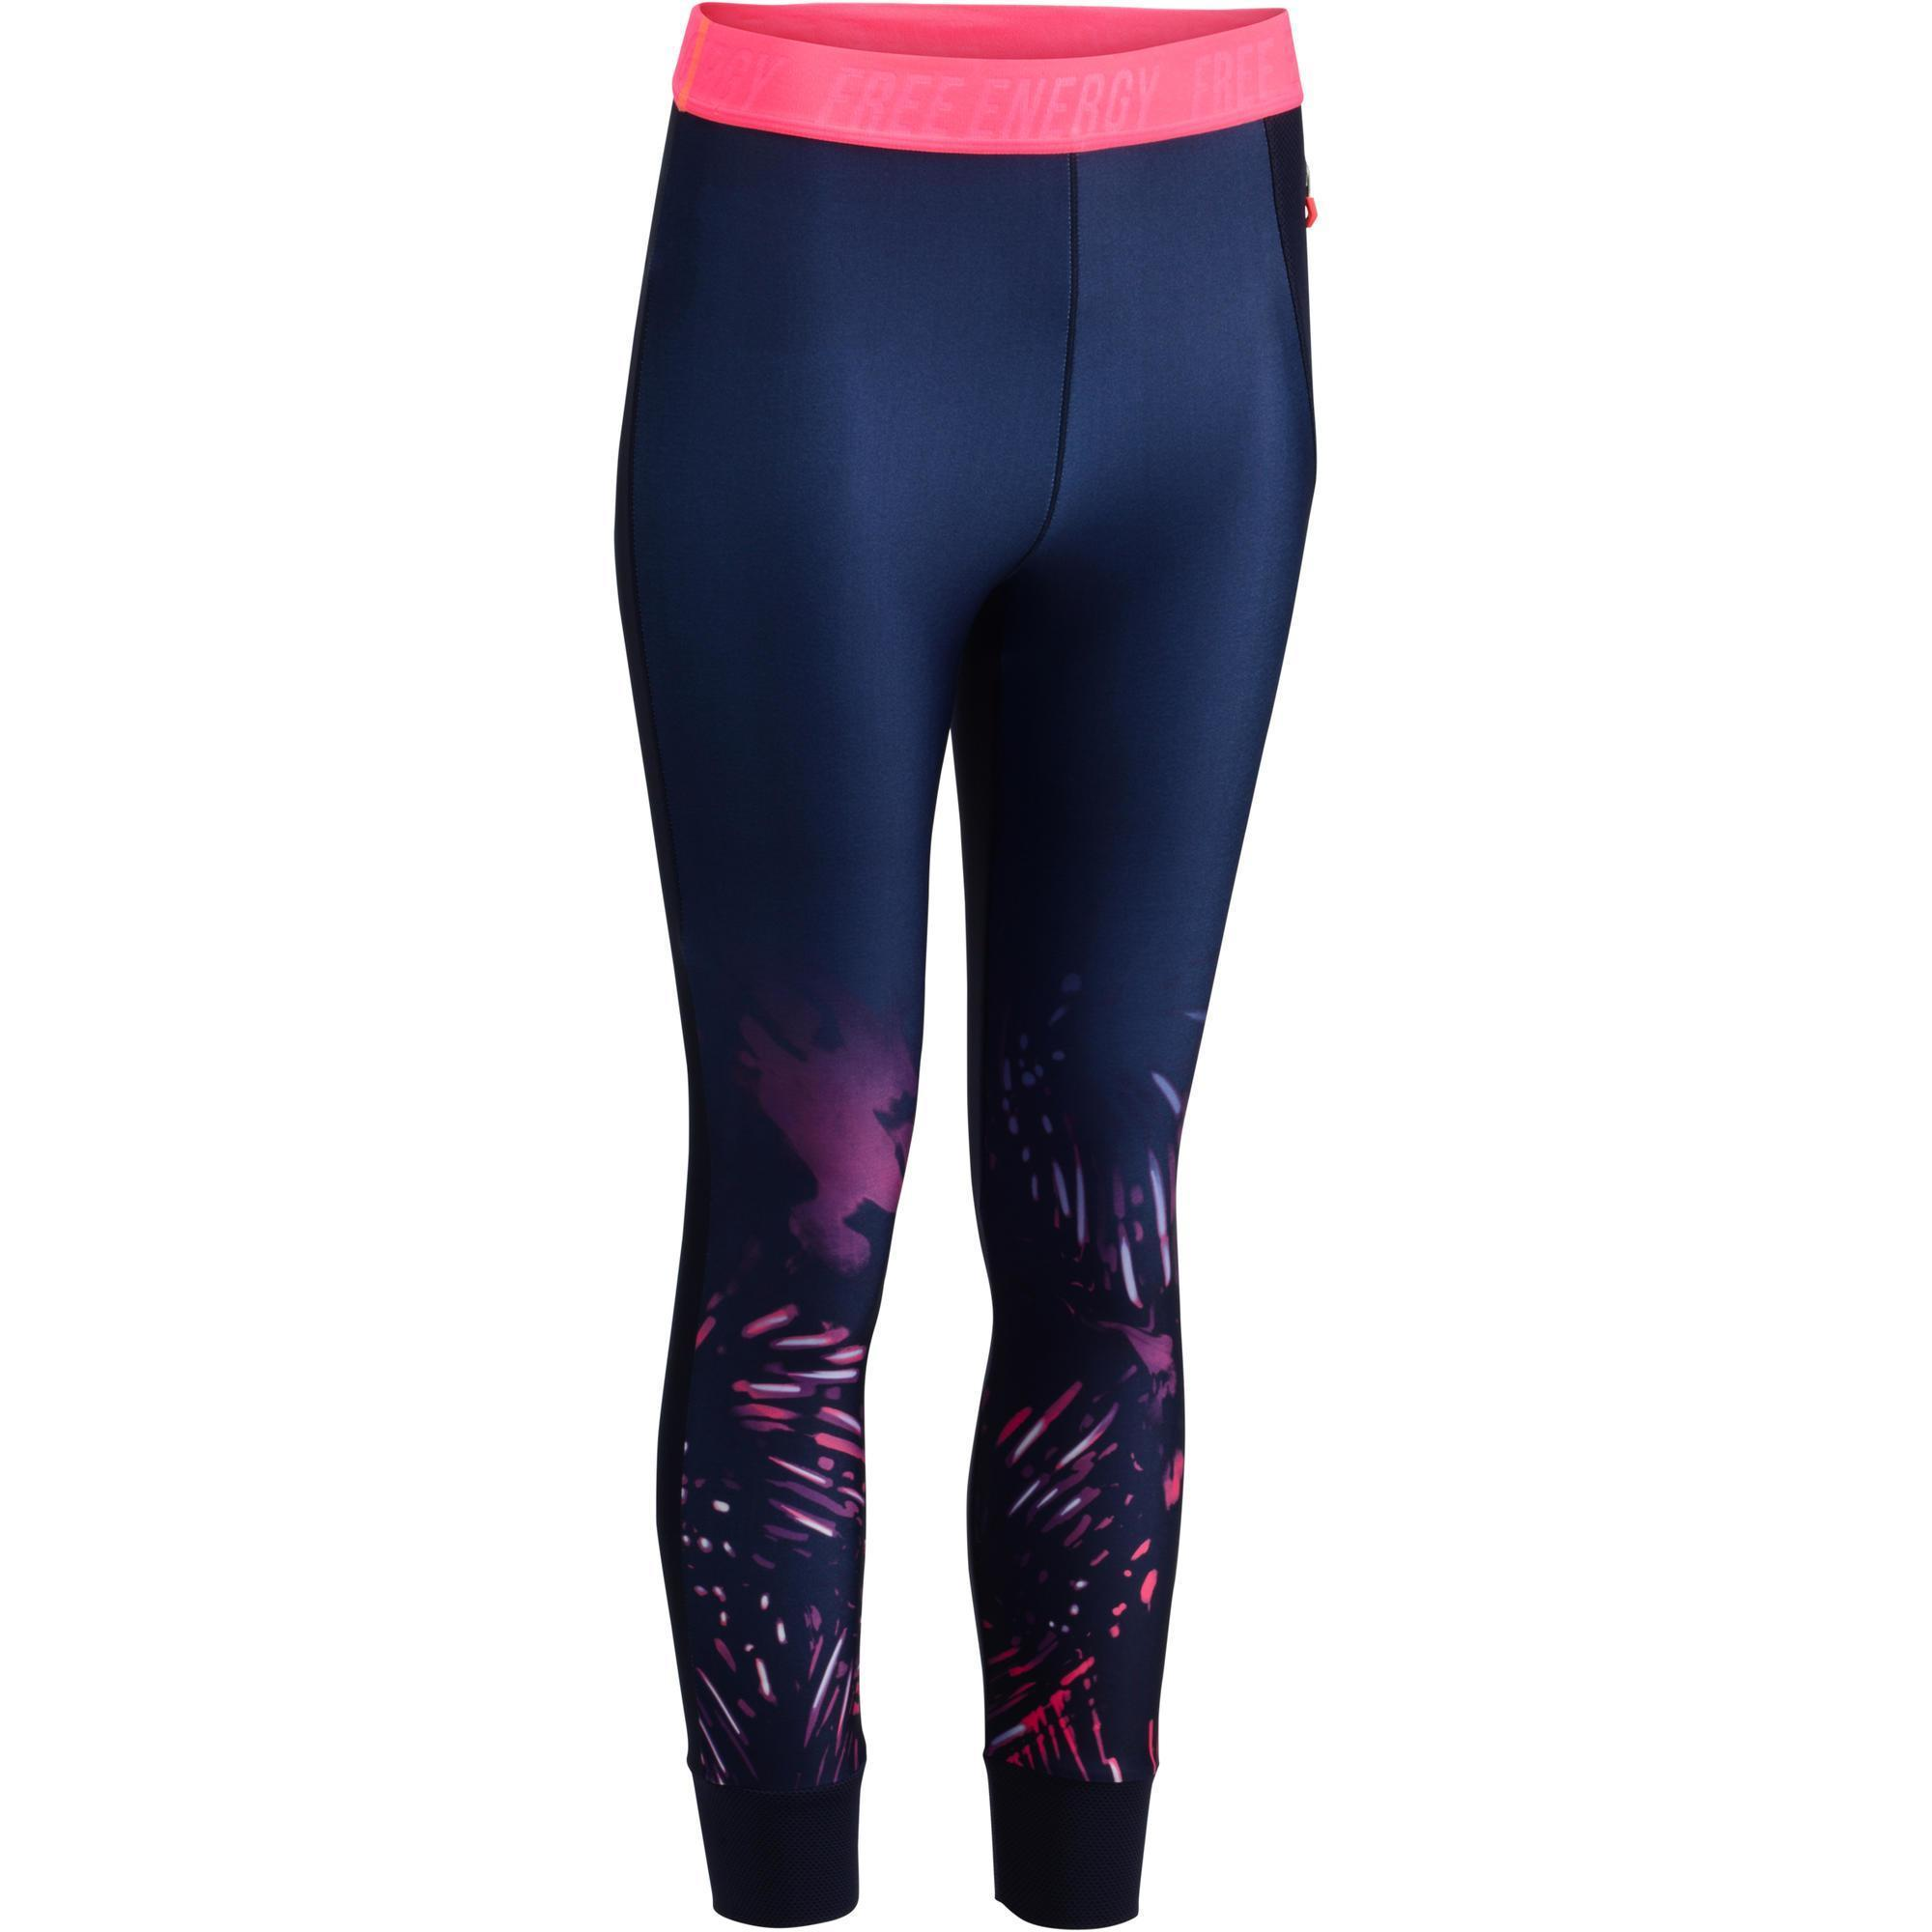 500 women 39 s cardio fitness 7 8 leggings blue with pink tropical print domyos by decathlon. Black Bedroom Furniture Sets. Home Design Ideas